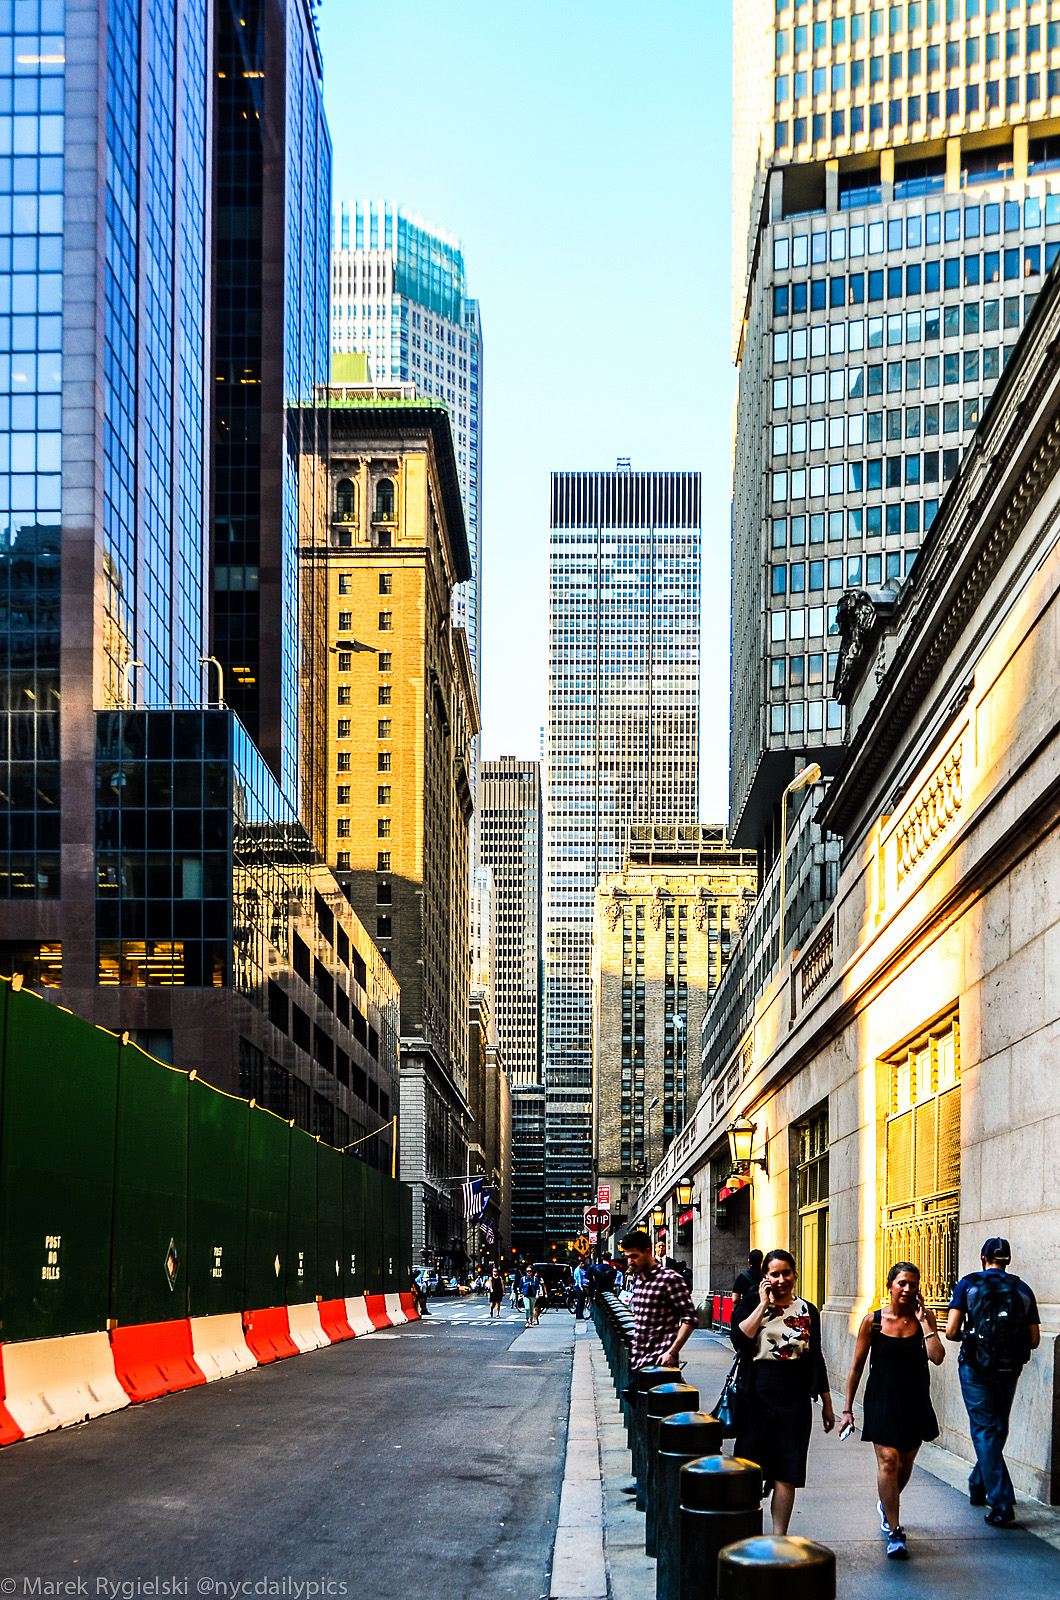 Vanderbilt Avenue - photo exhibition Manhattan by Marek Rygielski